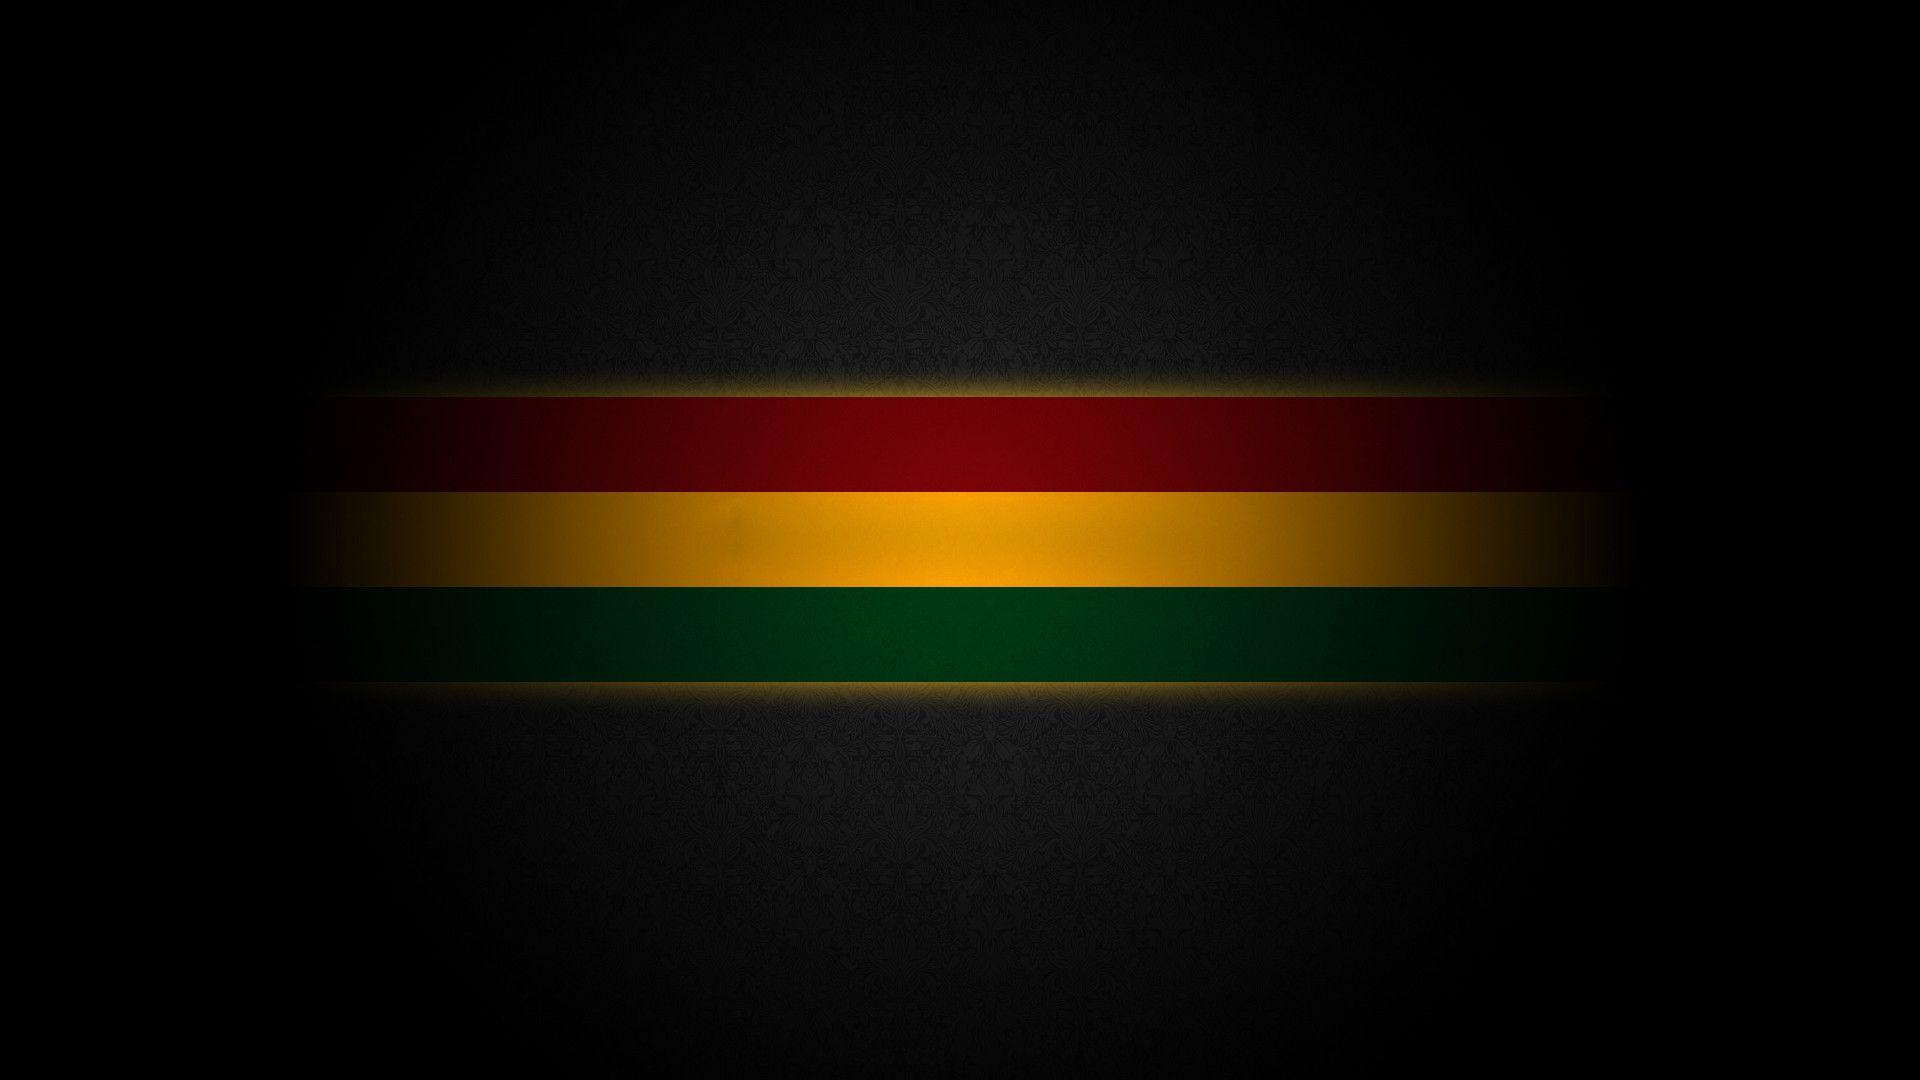 rasta colors backgrounds hd - photo #3